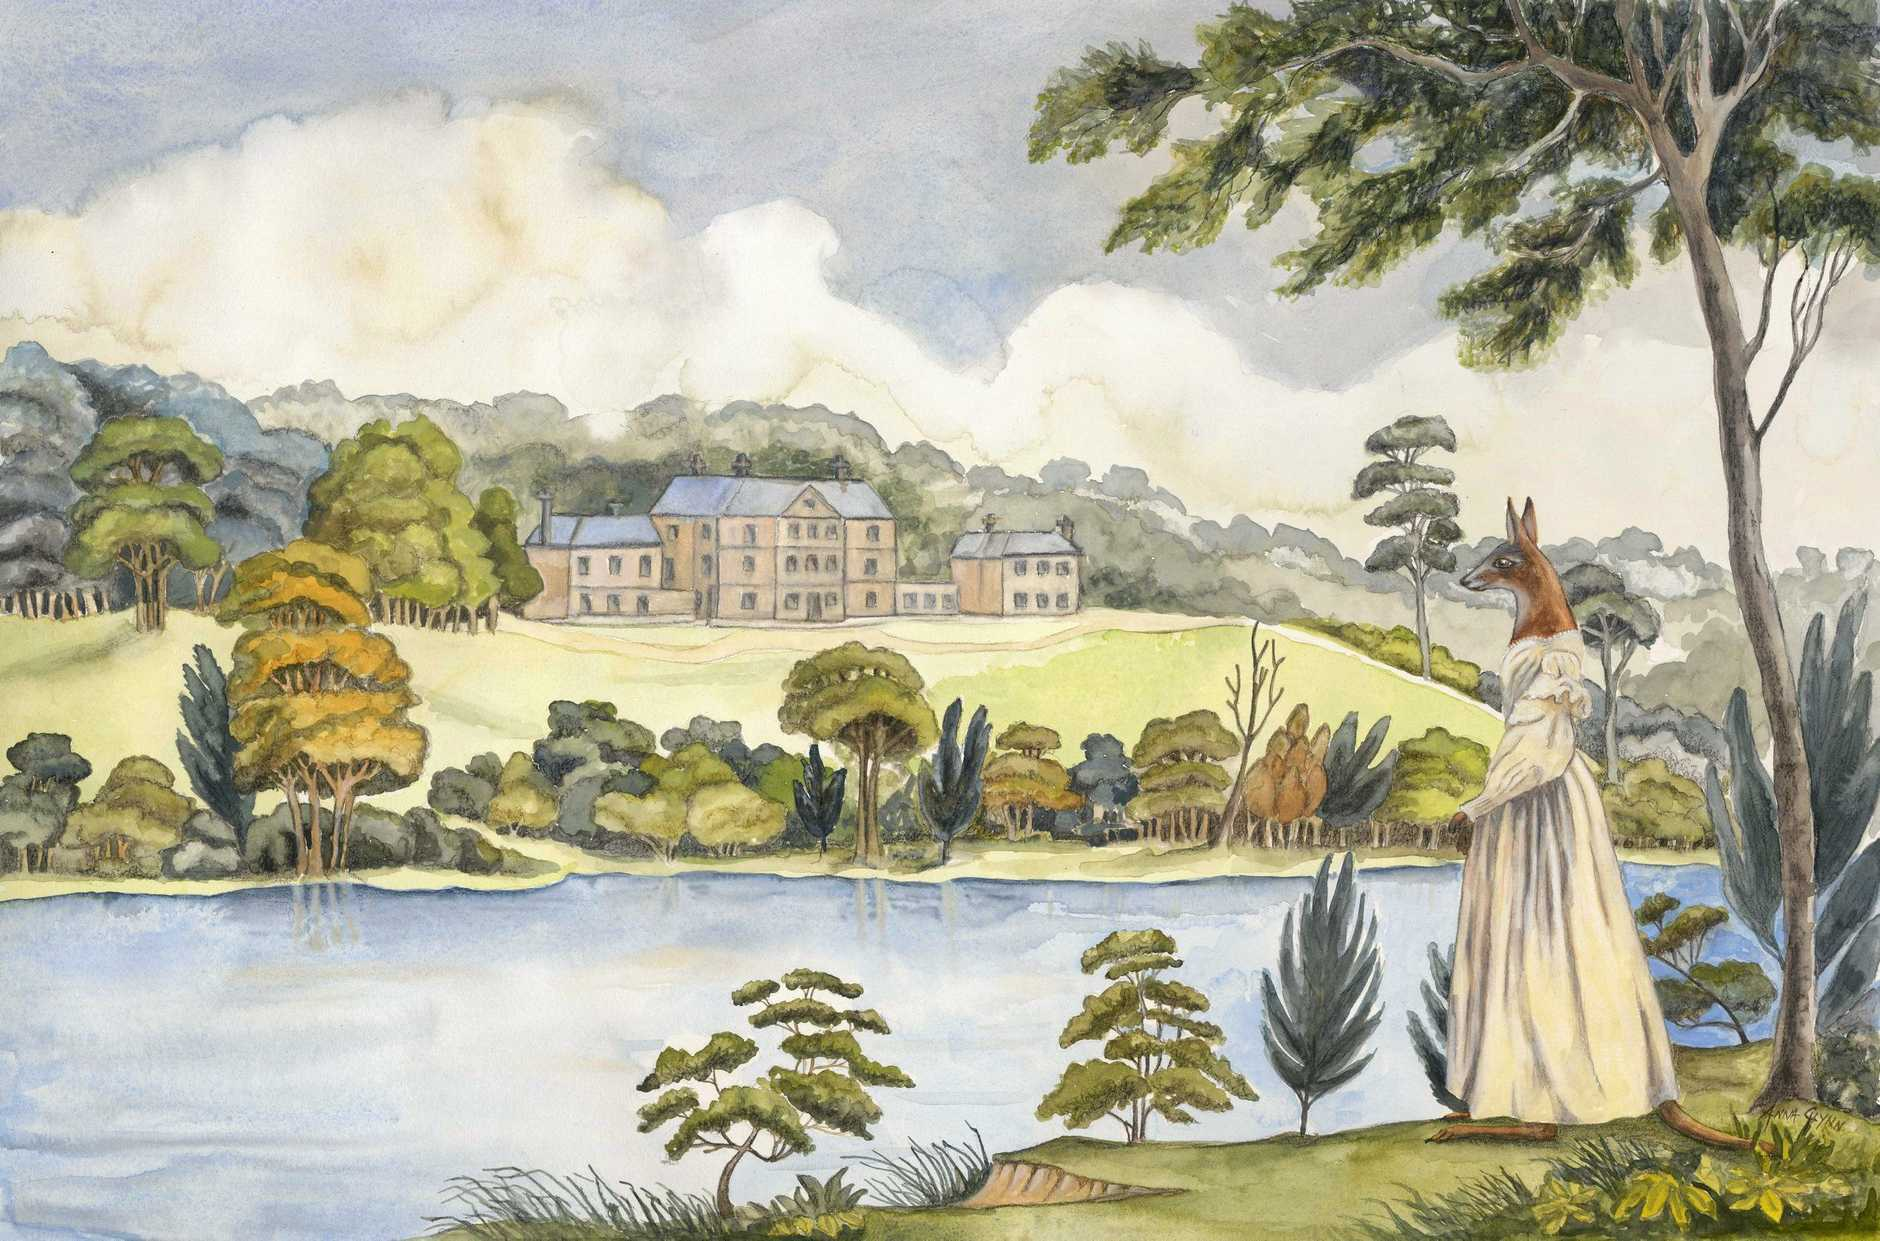 Anna Glynn's 2017 work Colonial Hybrid Reimagined from Joseph Lycett - View of the Female Orphan School, near Parramatta, 1824.